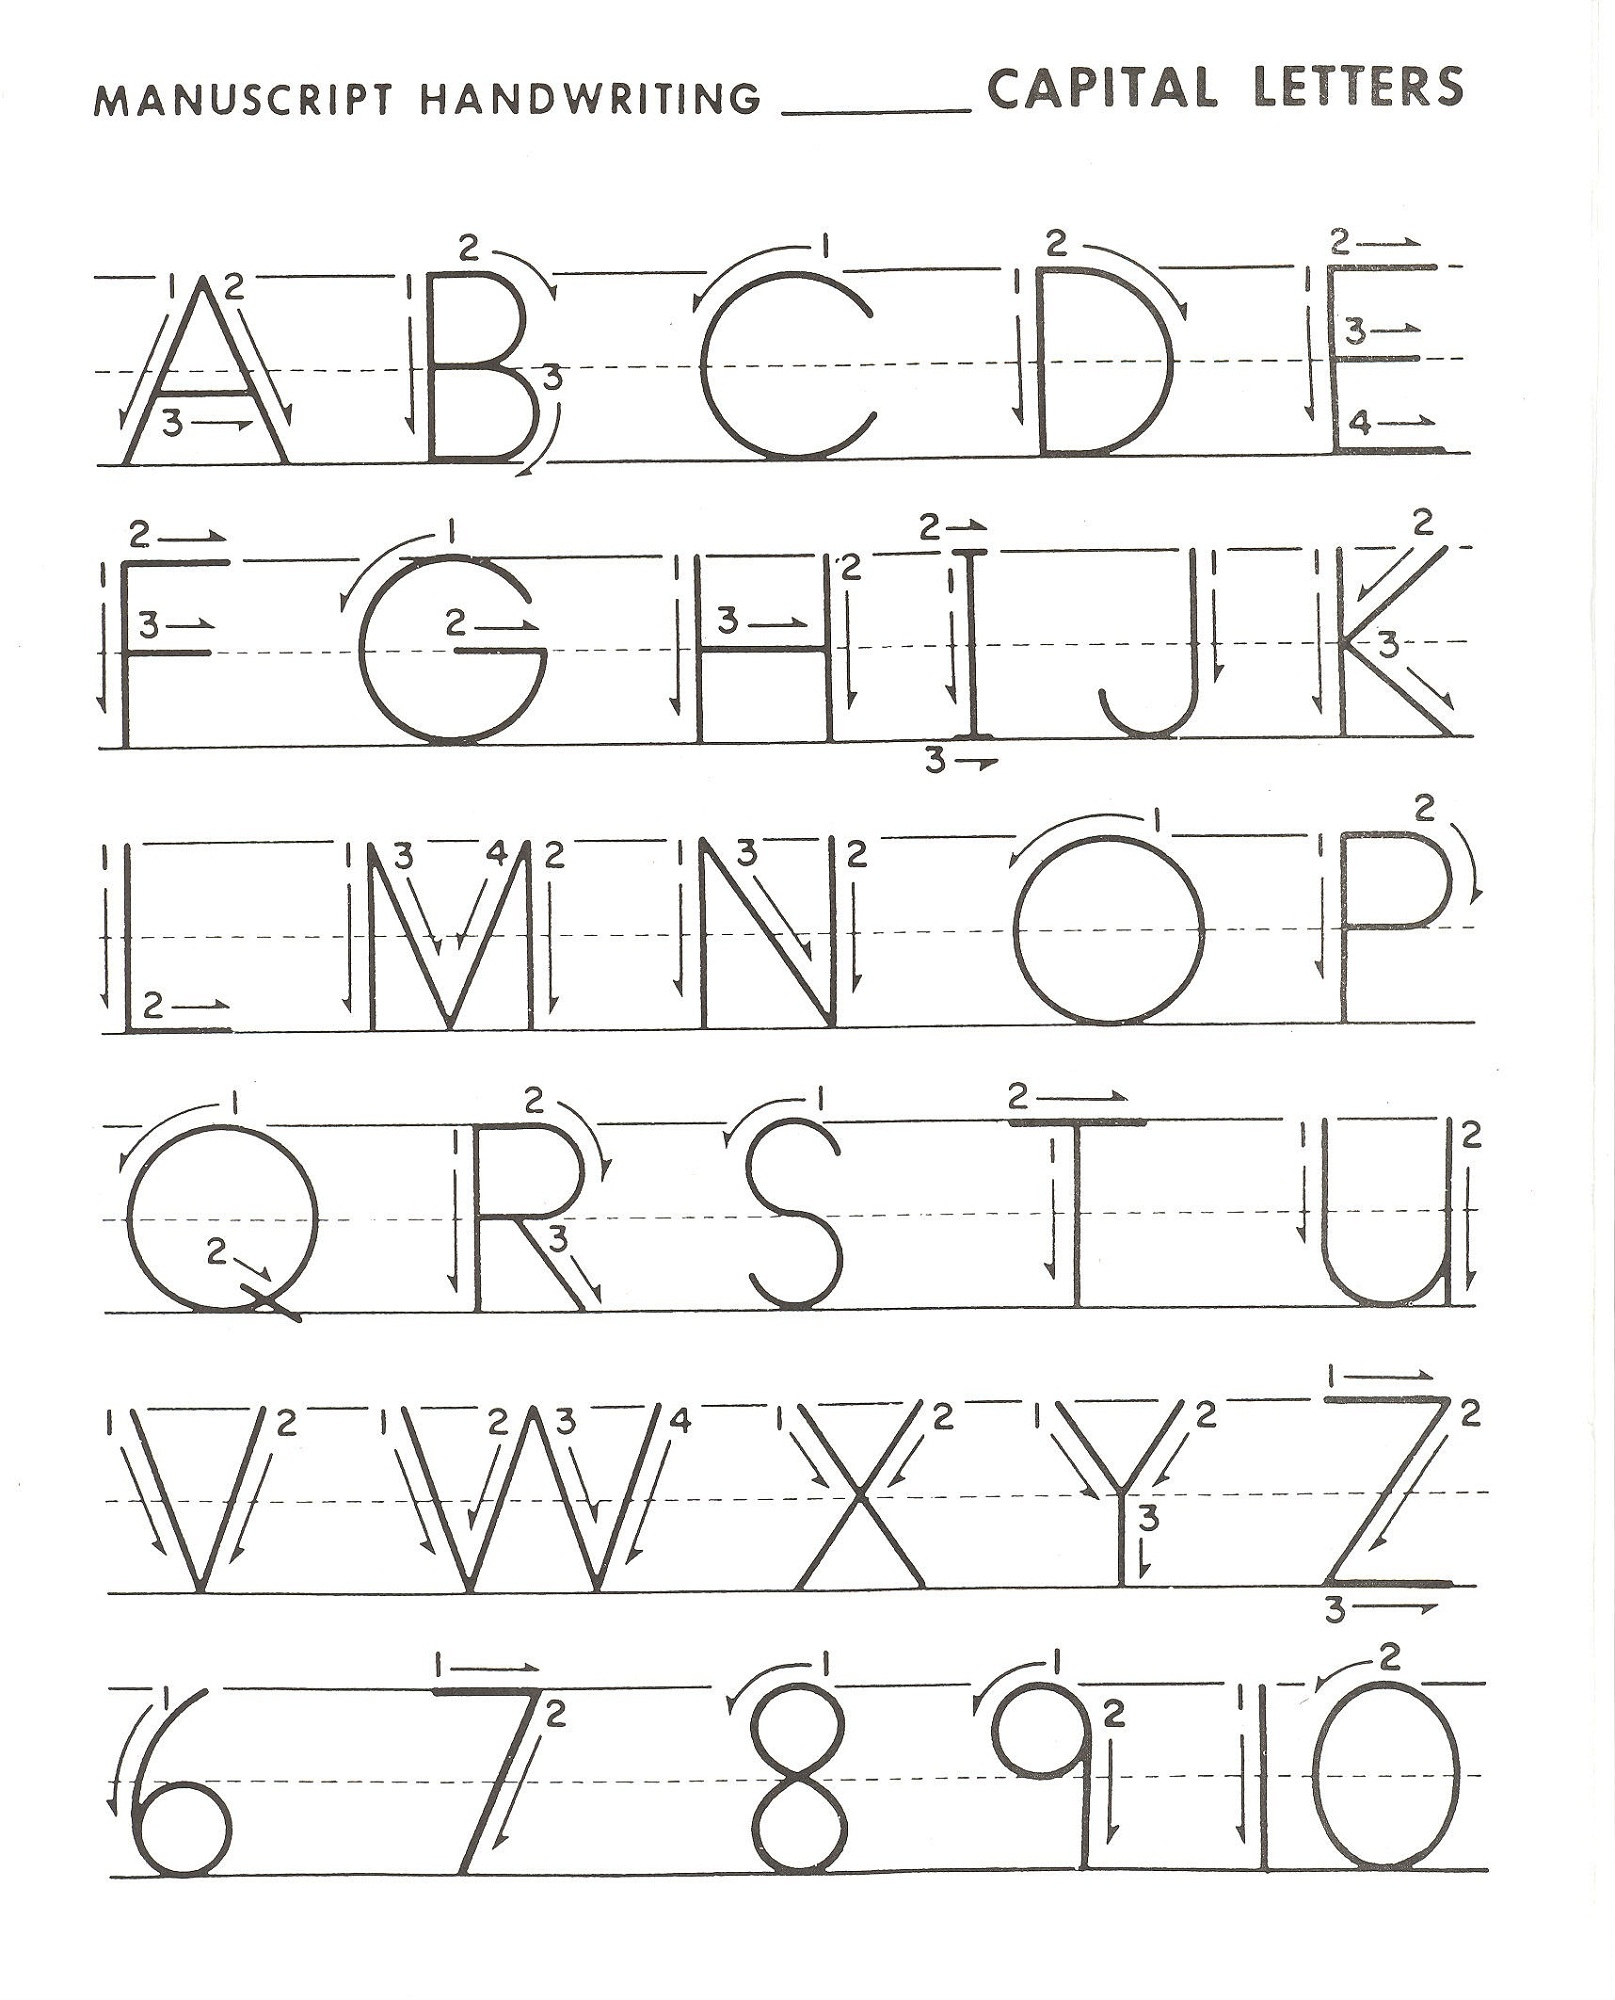 capital alphabet letters writing